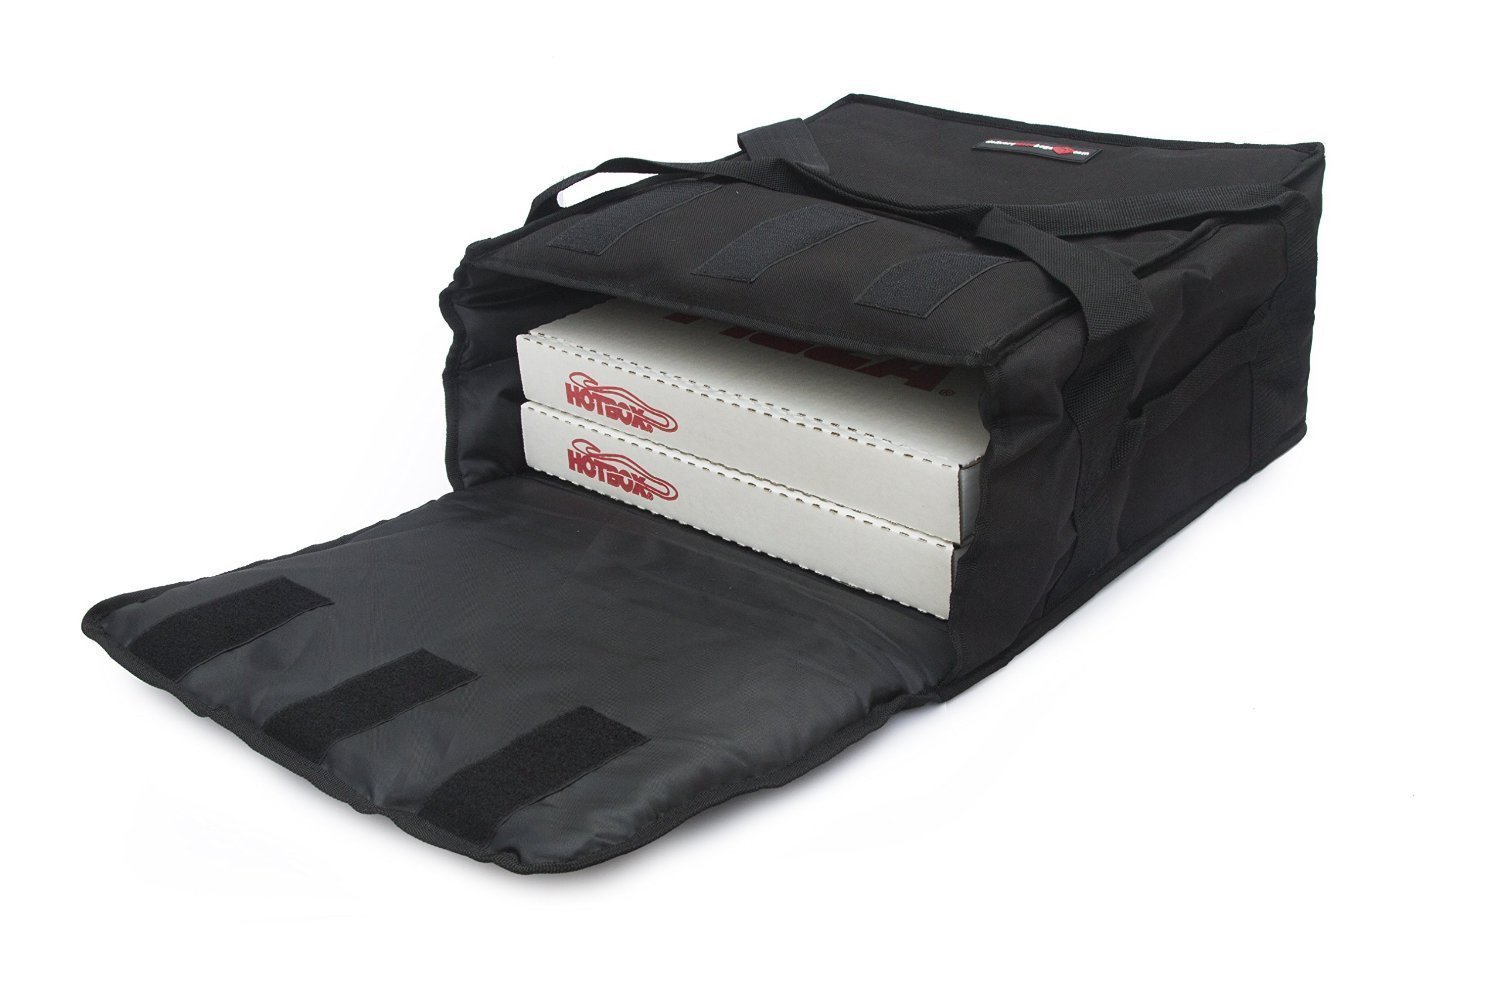 Black Polyester Insulated Pizza / Food Delivery Bag 12″ - 14″- Professional Pizza Delivery Bag- Moisture Free- Holds Multi Pizza Boxes- Commercial Pizza Bags. (12-14, black)